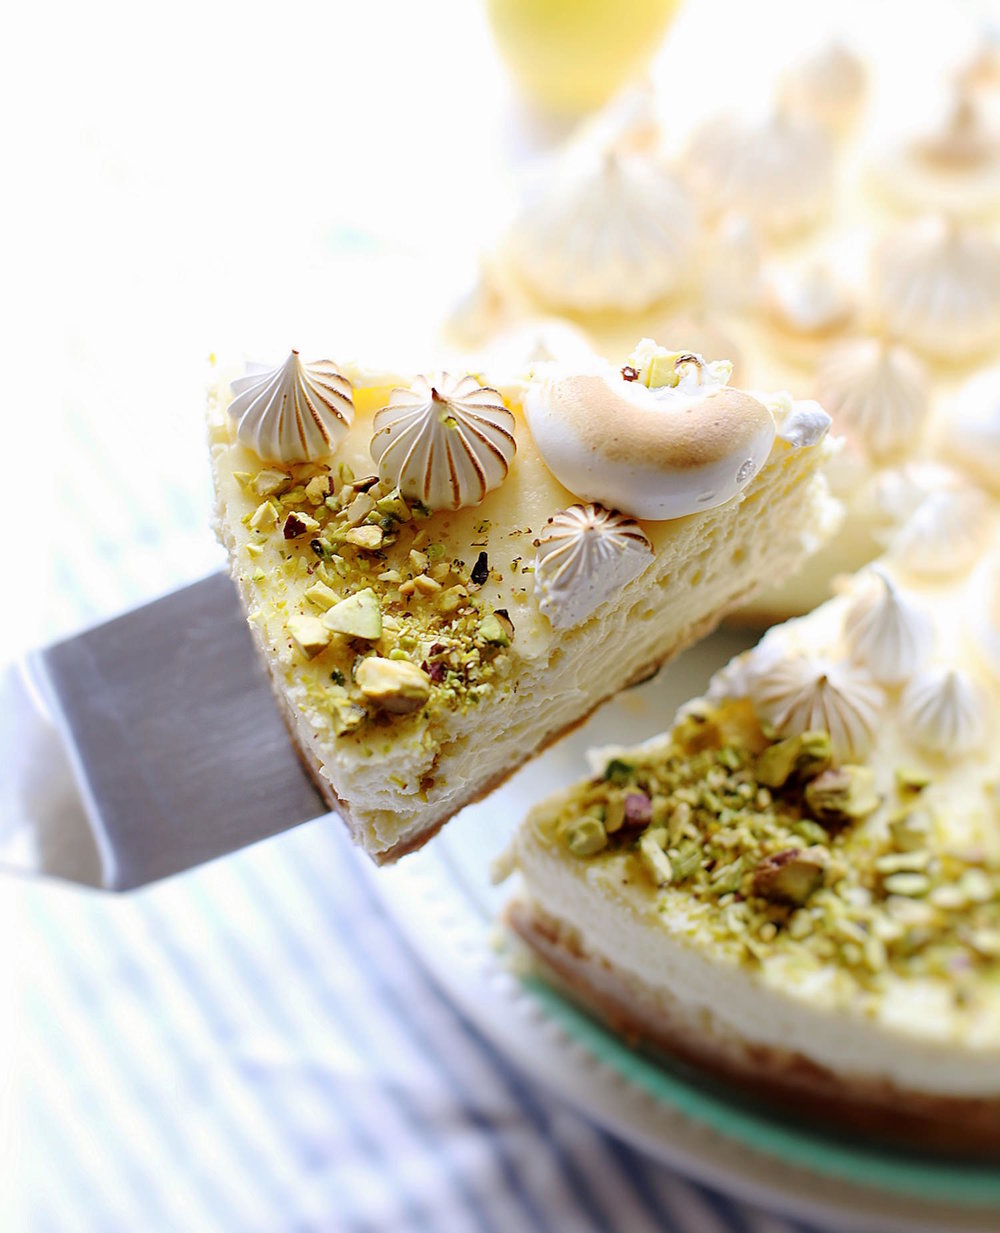 Creamy Lemon Meringue Cheesecake | TrufflesandTrends.com